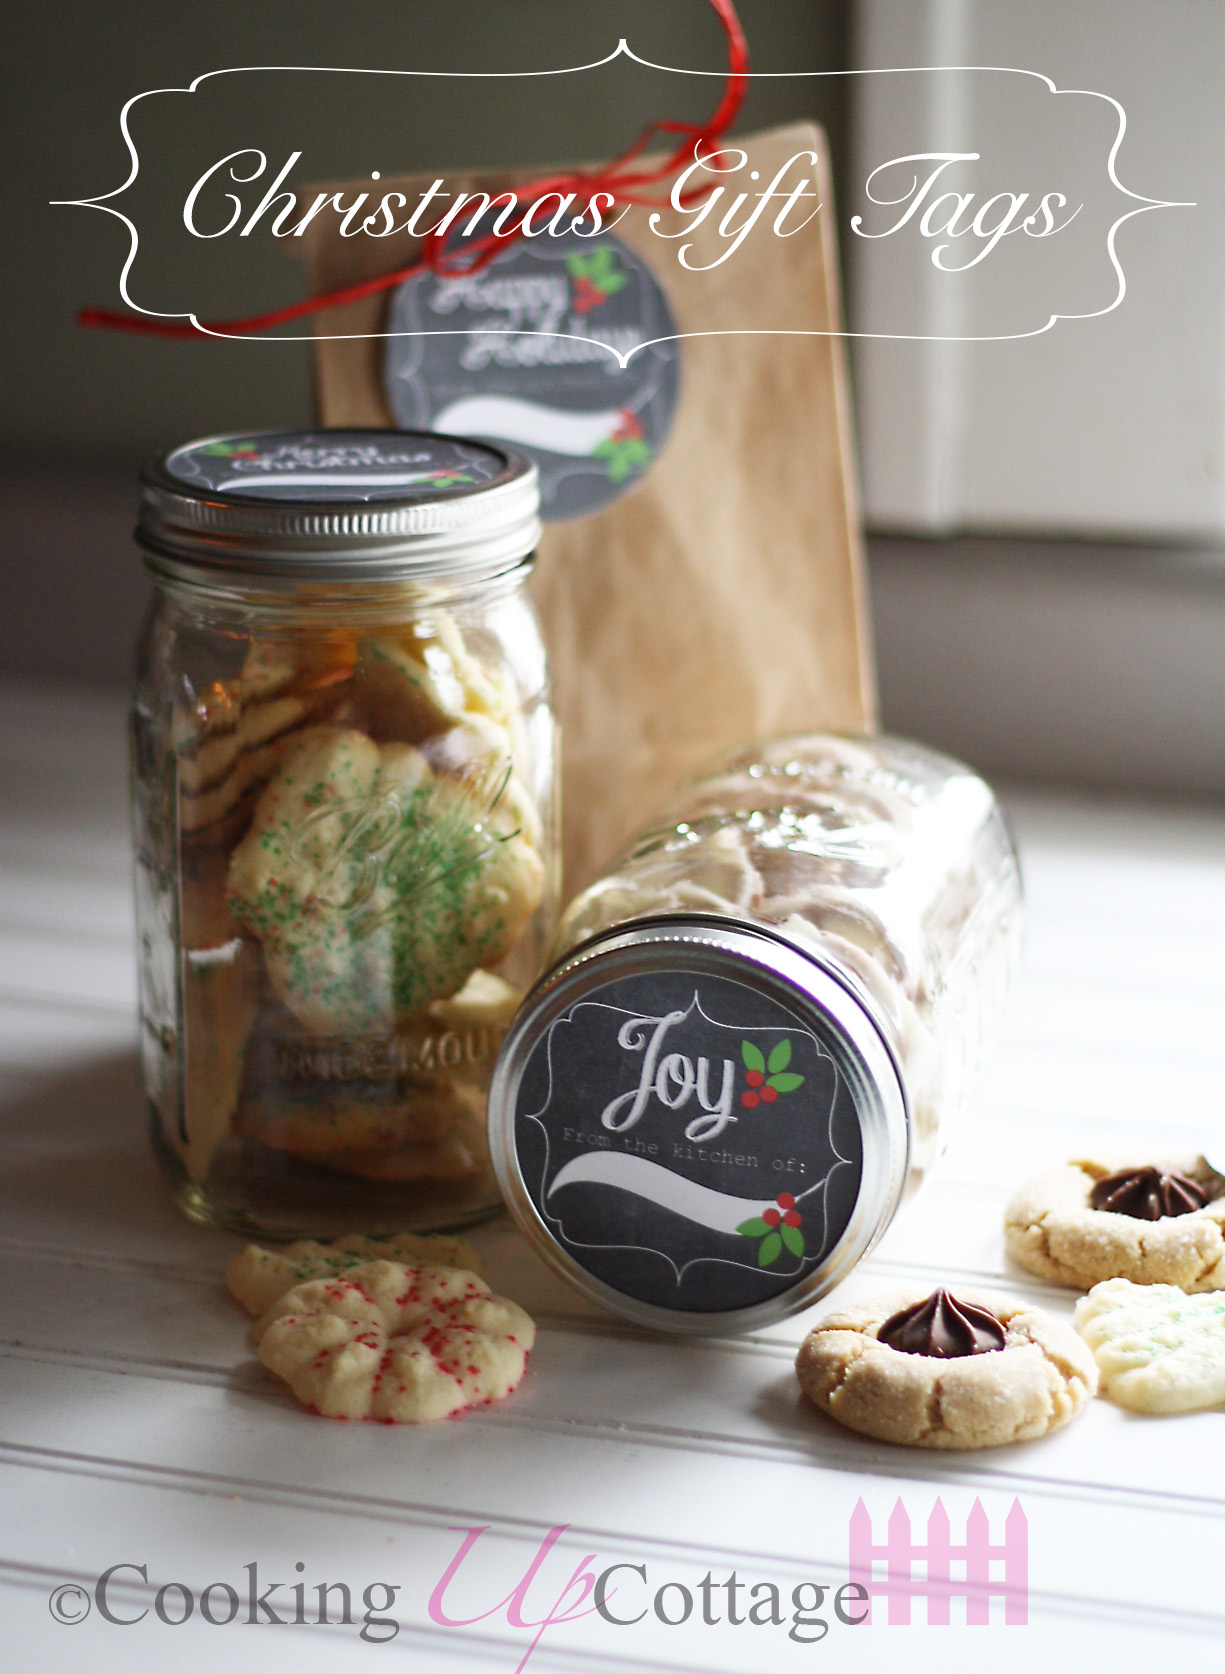 Christmas Gift Tags – Cooking Up Cottage